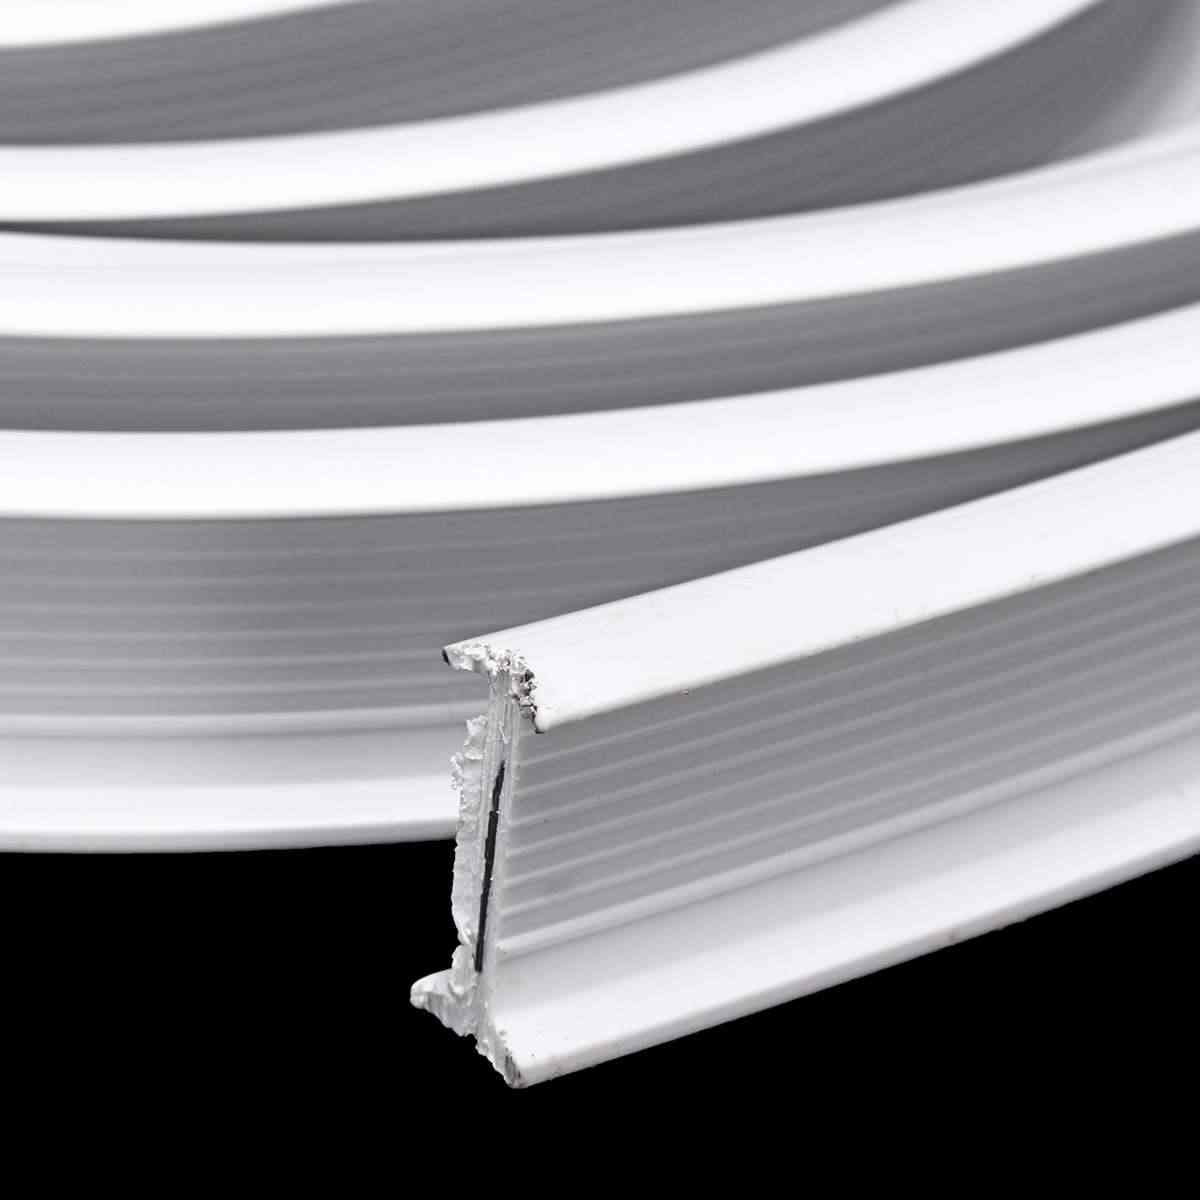 New 5m Flexible Ceiling Mounted Curtain Track Rail Straight Slide Windows Balcony Plastic Bendable Home Window Decor Accessories